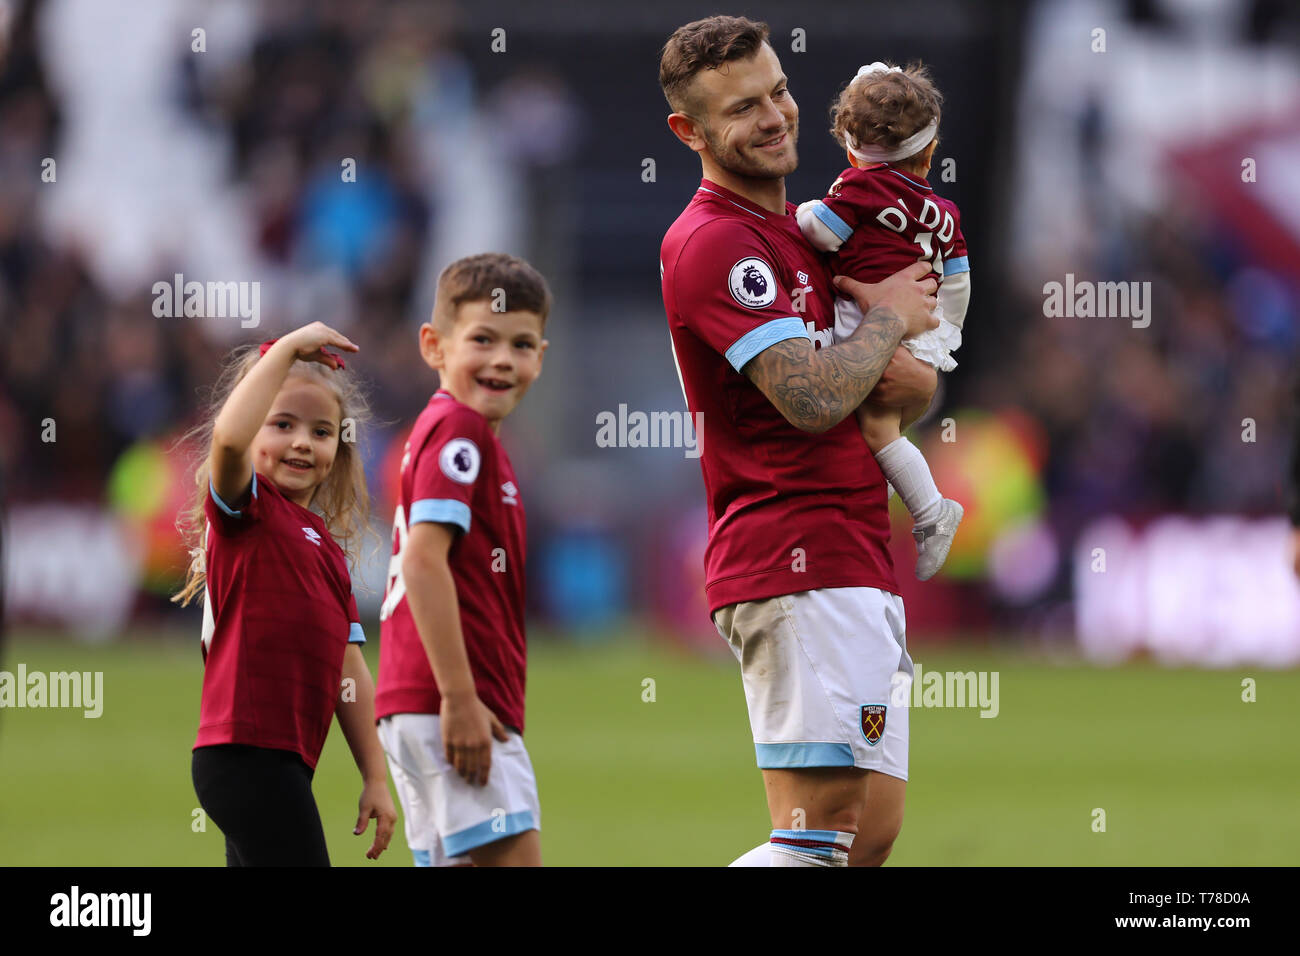 Jack Wilshere of West Ham United and his children during the lap of appreciation - West Ham United v Southampton, Premier League, London Stadium, Lond - Stock Image